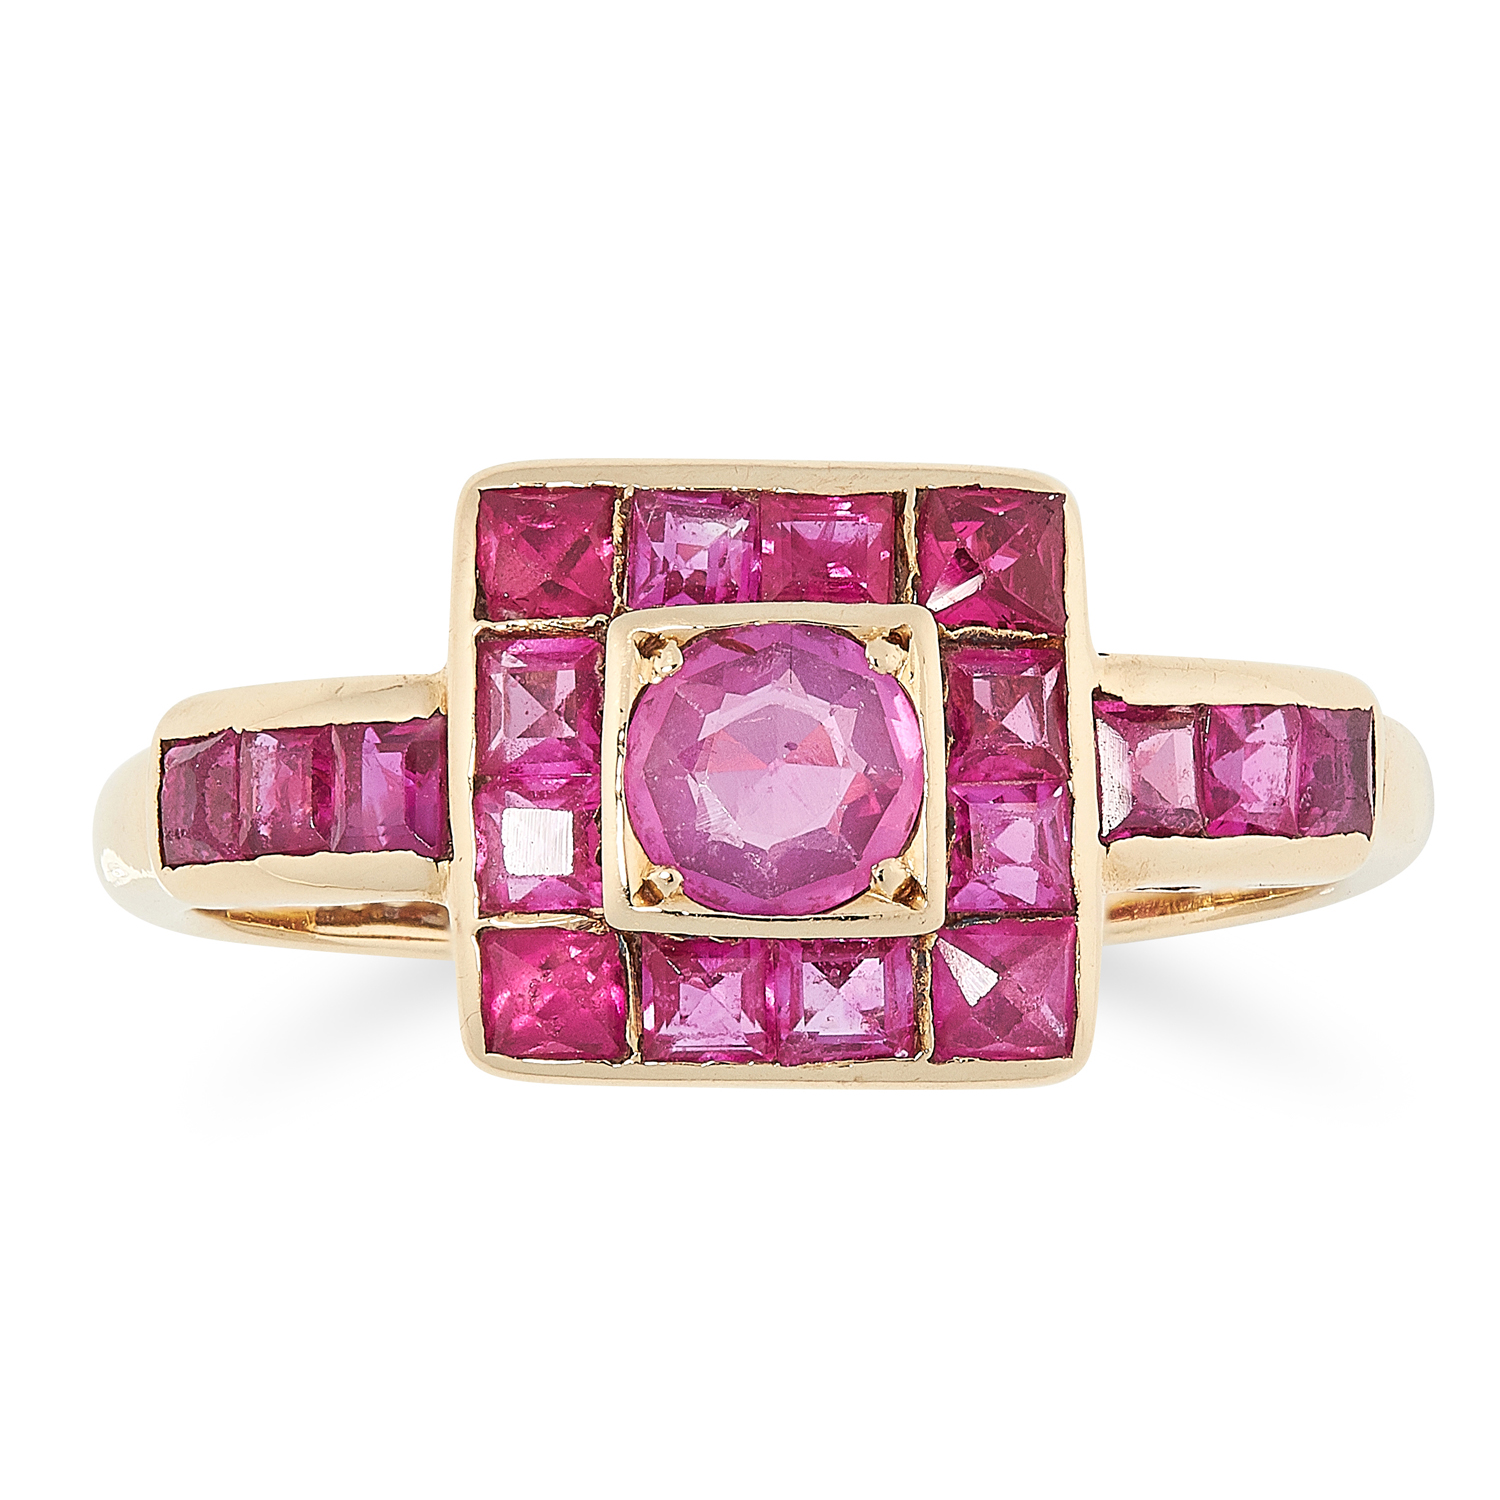 A RUBY CLUSTER DRESS RING, CIRCA 1950 in 18ct yellow gold, set with a central round cut ruby